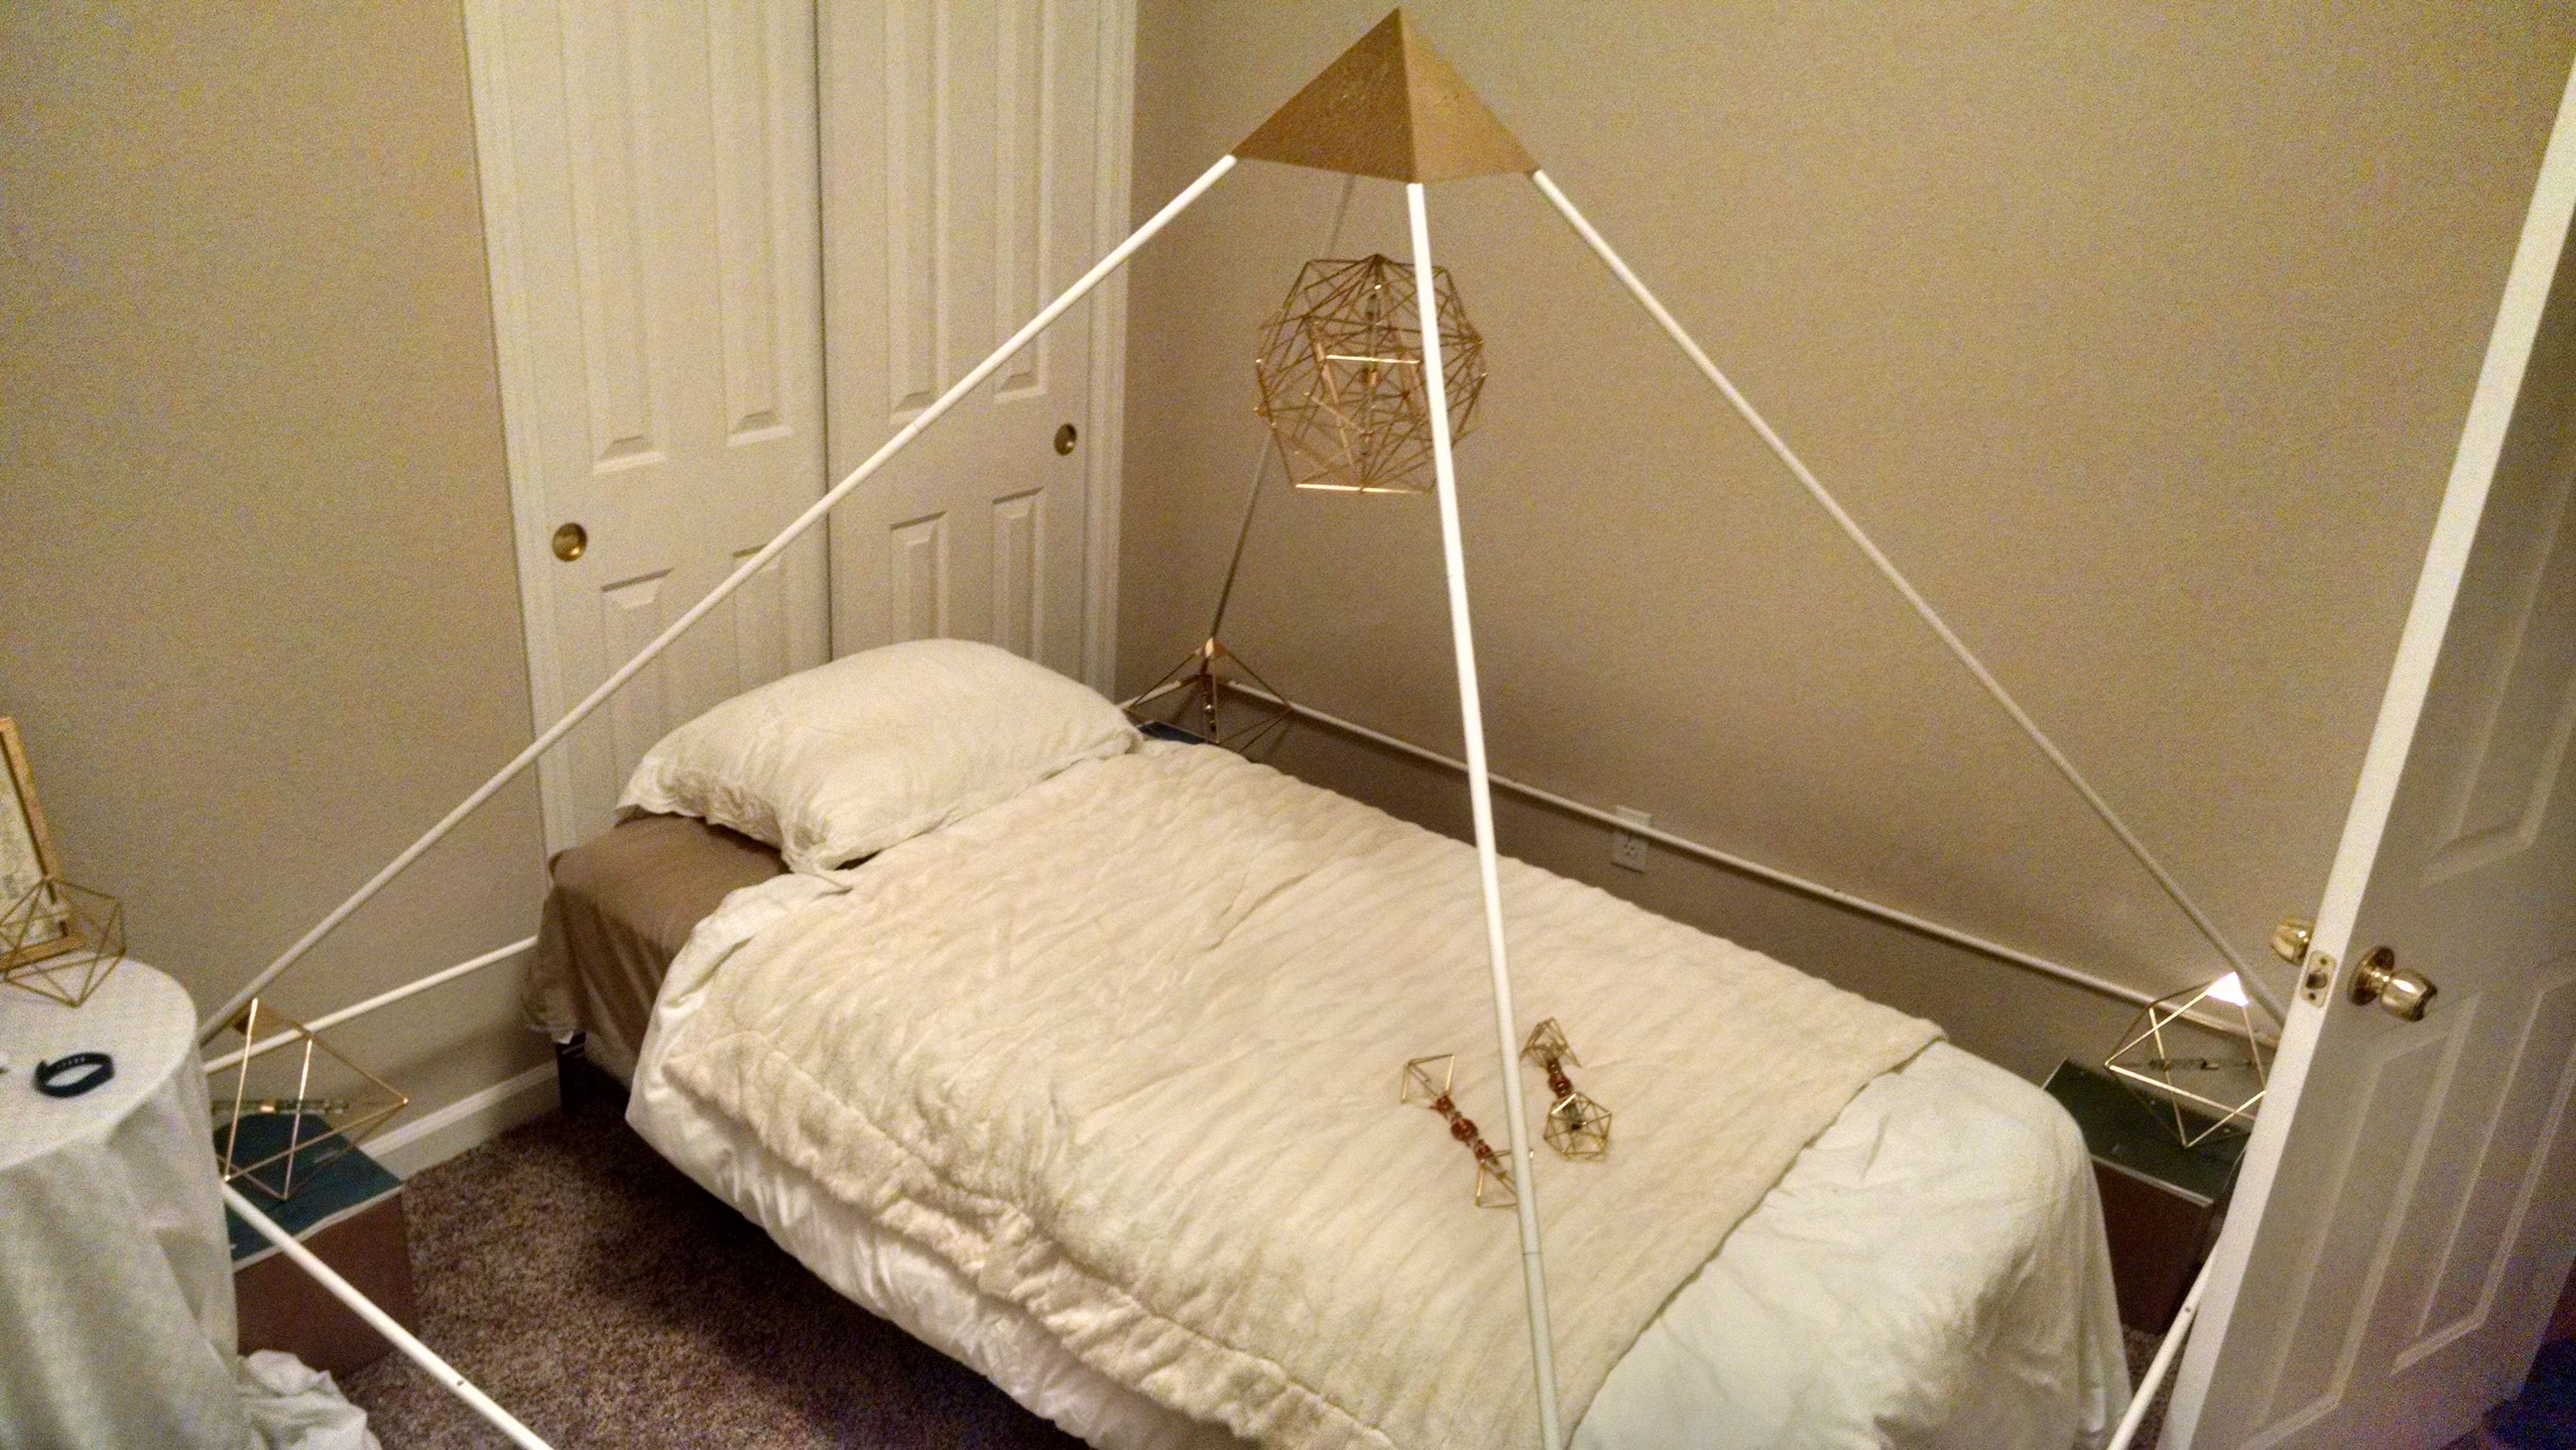 Pyramid System Set Up Over The Bed, Extremely Grounding To Sleep Under